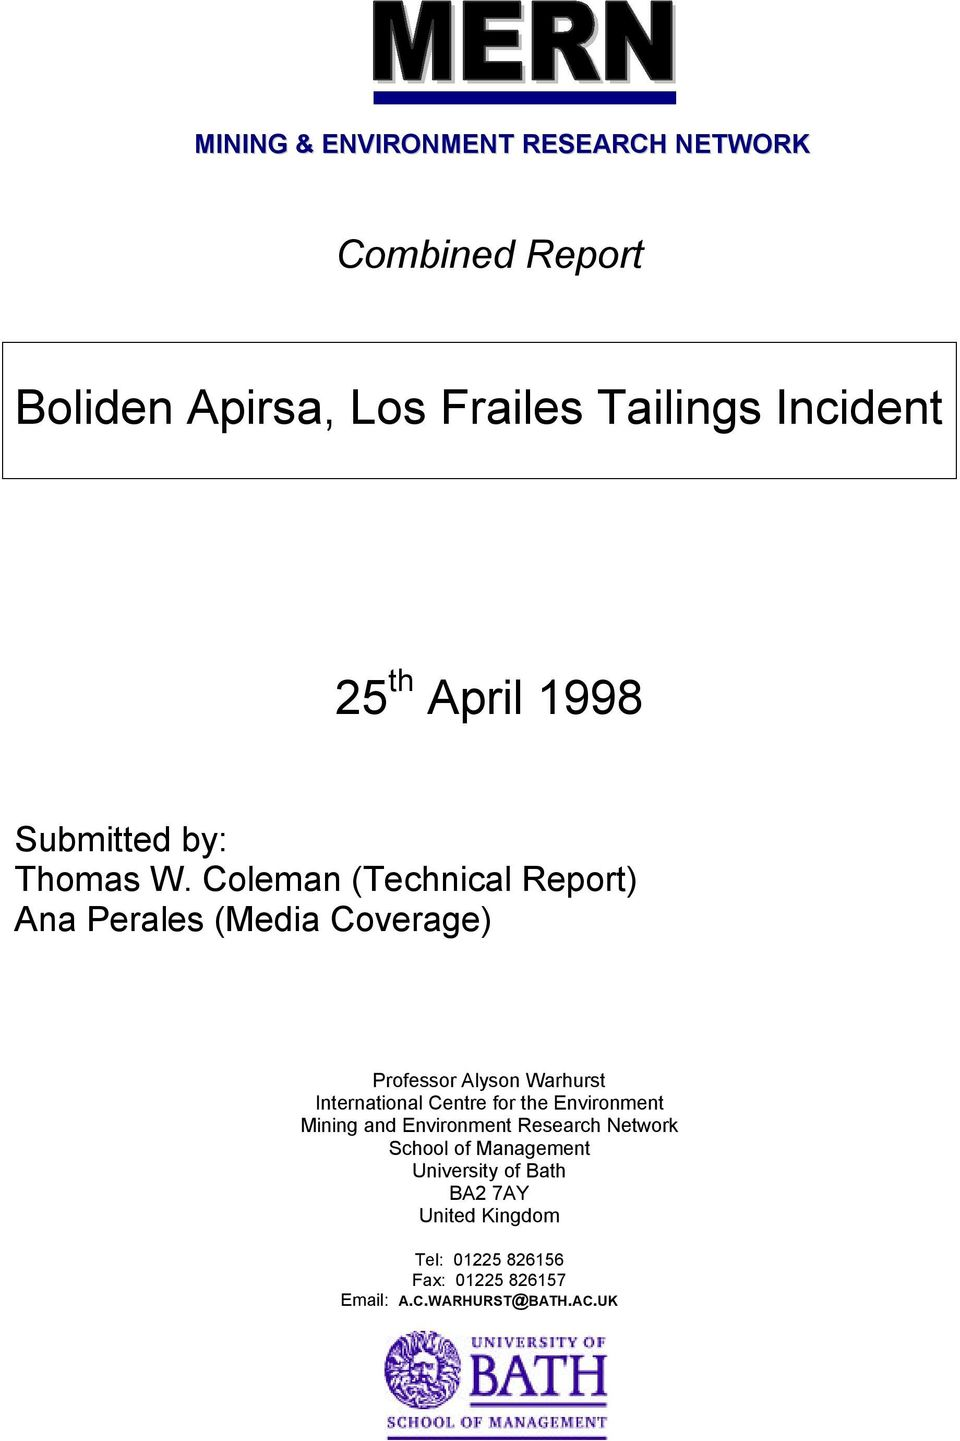 Coleman (Technical Report) Ana Perales (Media Coverage) Professor Alyson Warhurst International Centre for